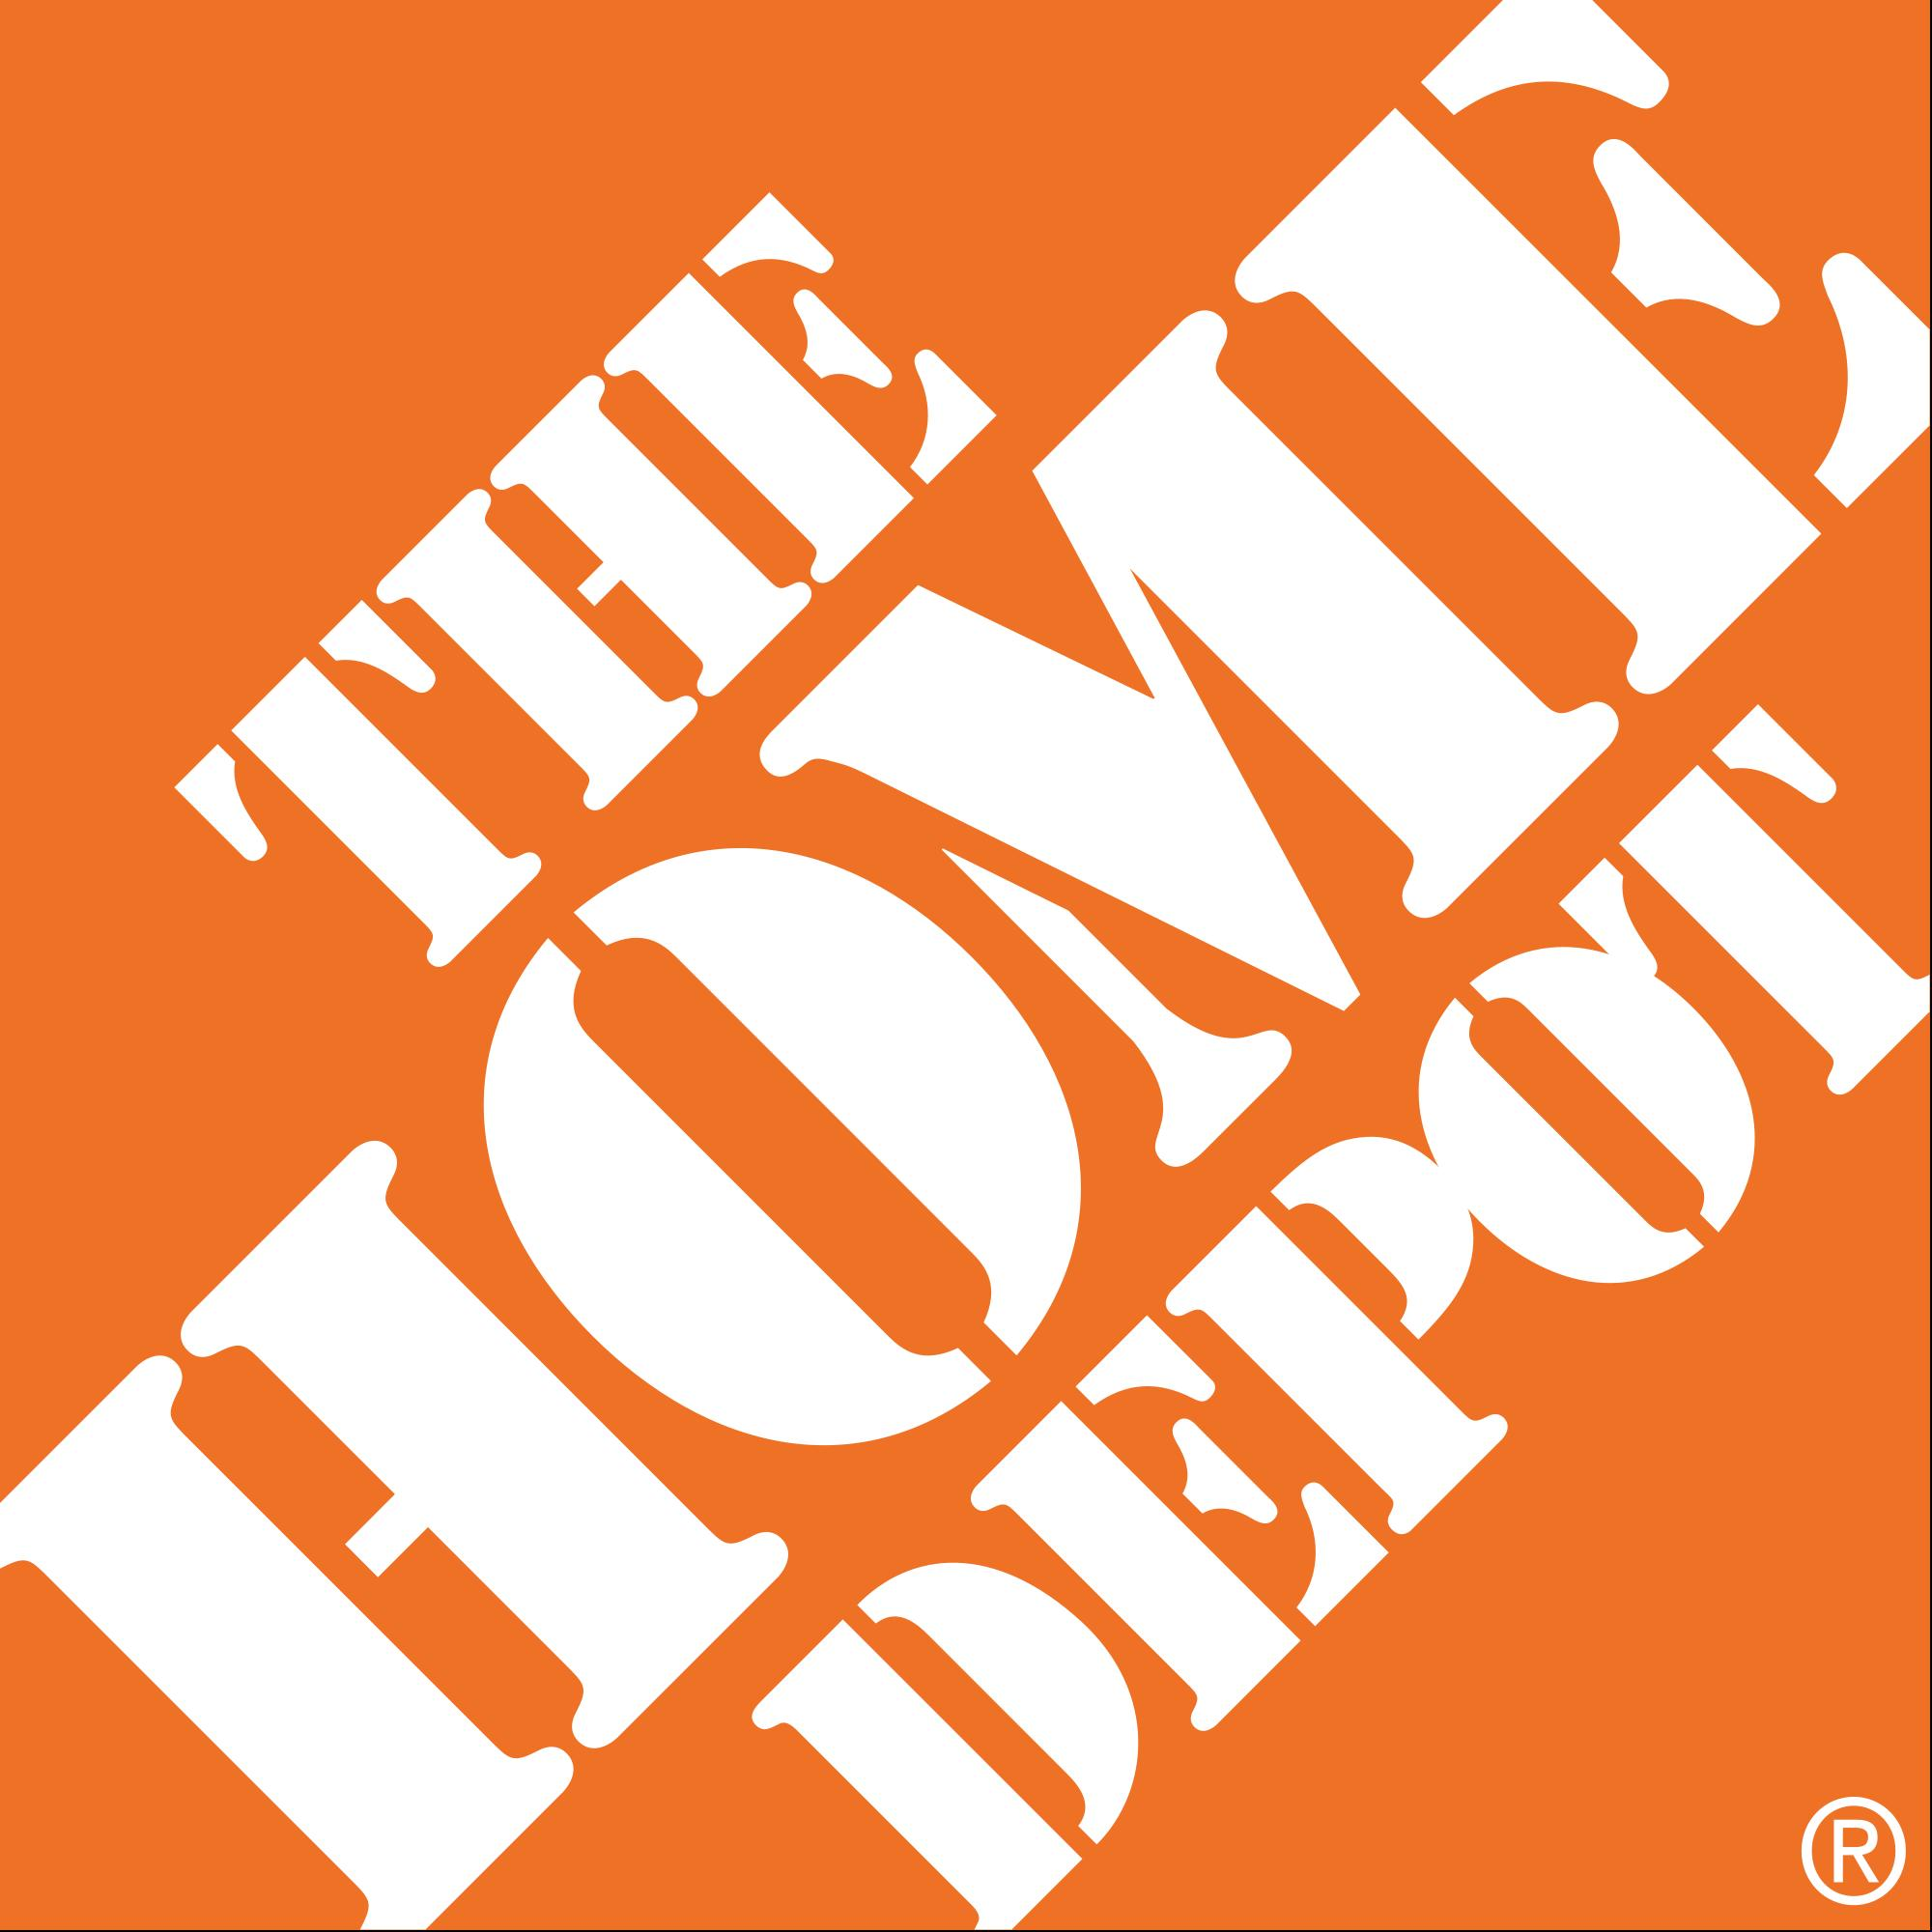 Up to 88% Off Select Clearance Lighting and Ceiling Fans @ Home Depot